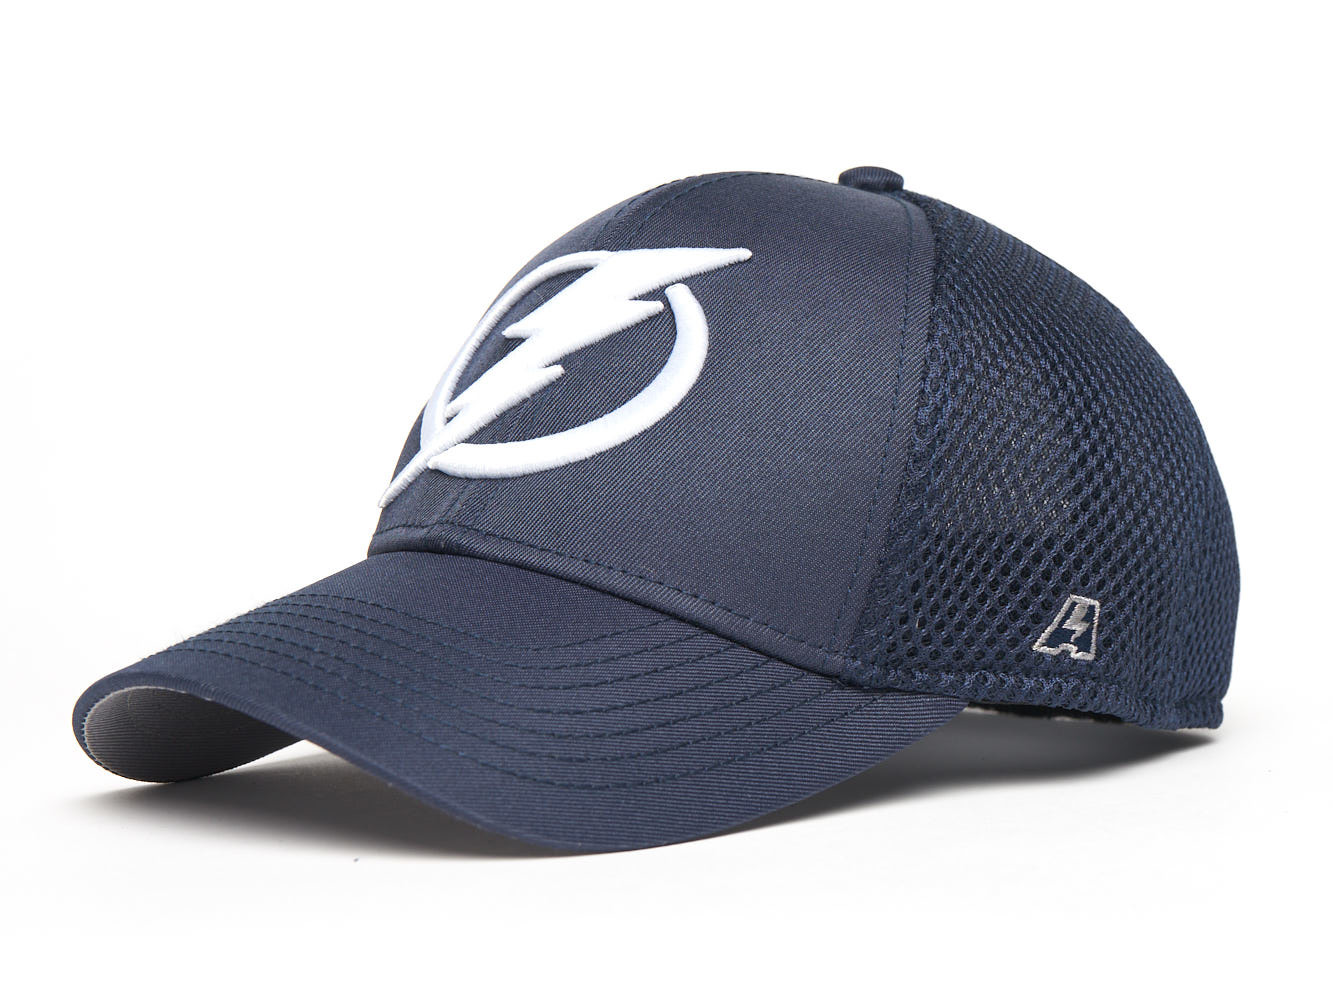 Бейсболка NHL Tampa Bay Lightning (размер XL/XXL)